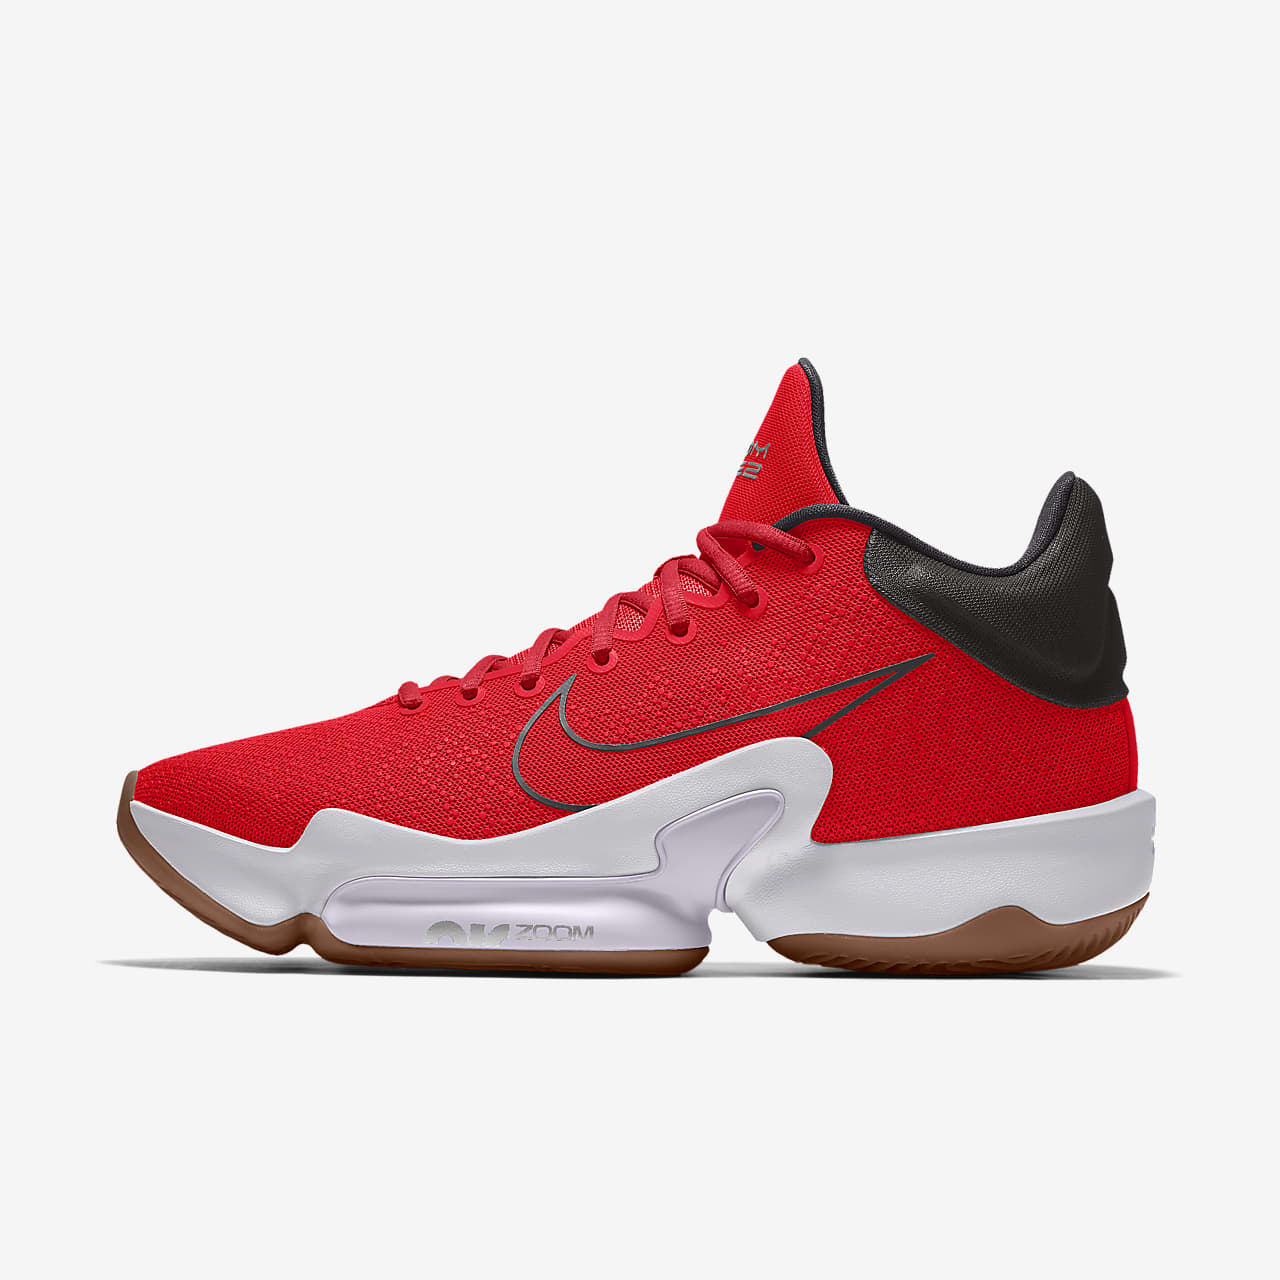 Chaussure de basketball personnalisable Nike Rize 2 By You